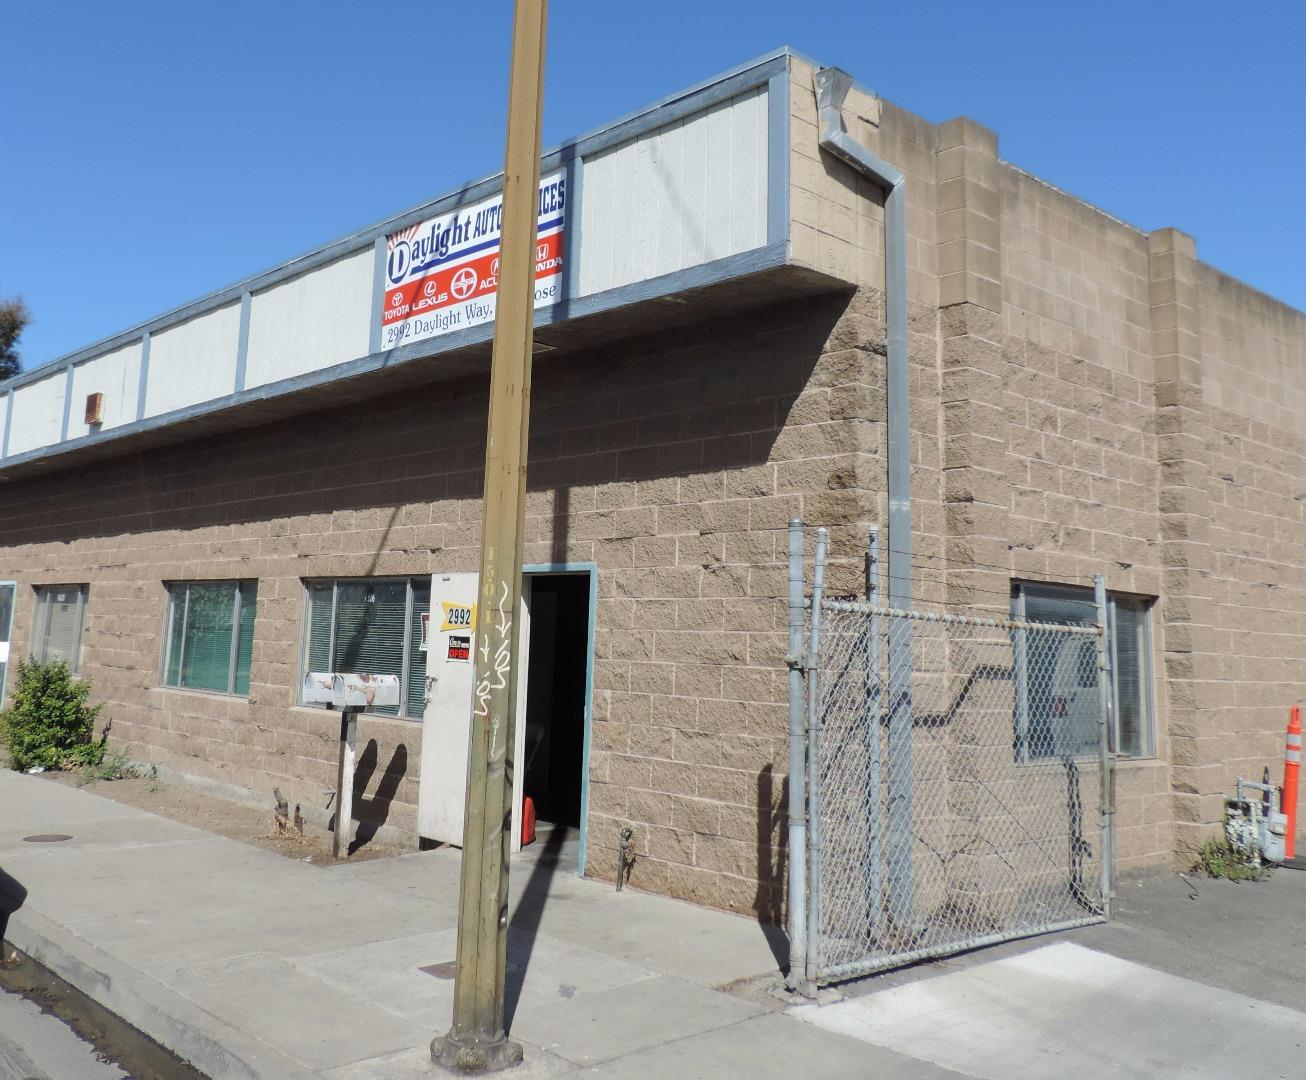 Commercial for Sale at 2990 Daylight Way 2990 Daylight Way San Jose, California 95111 United States